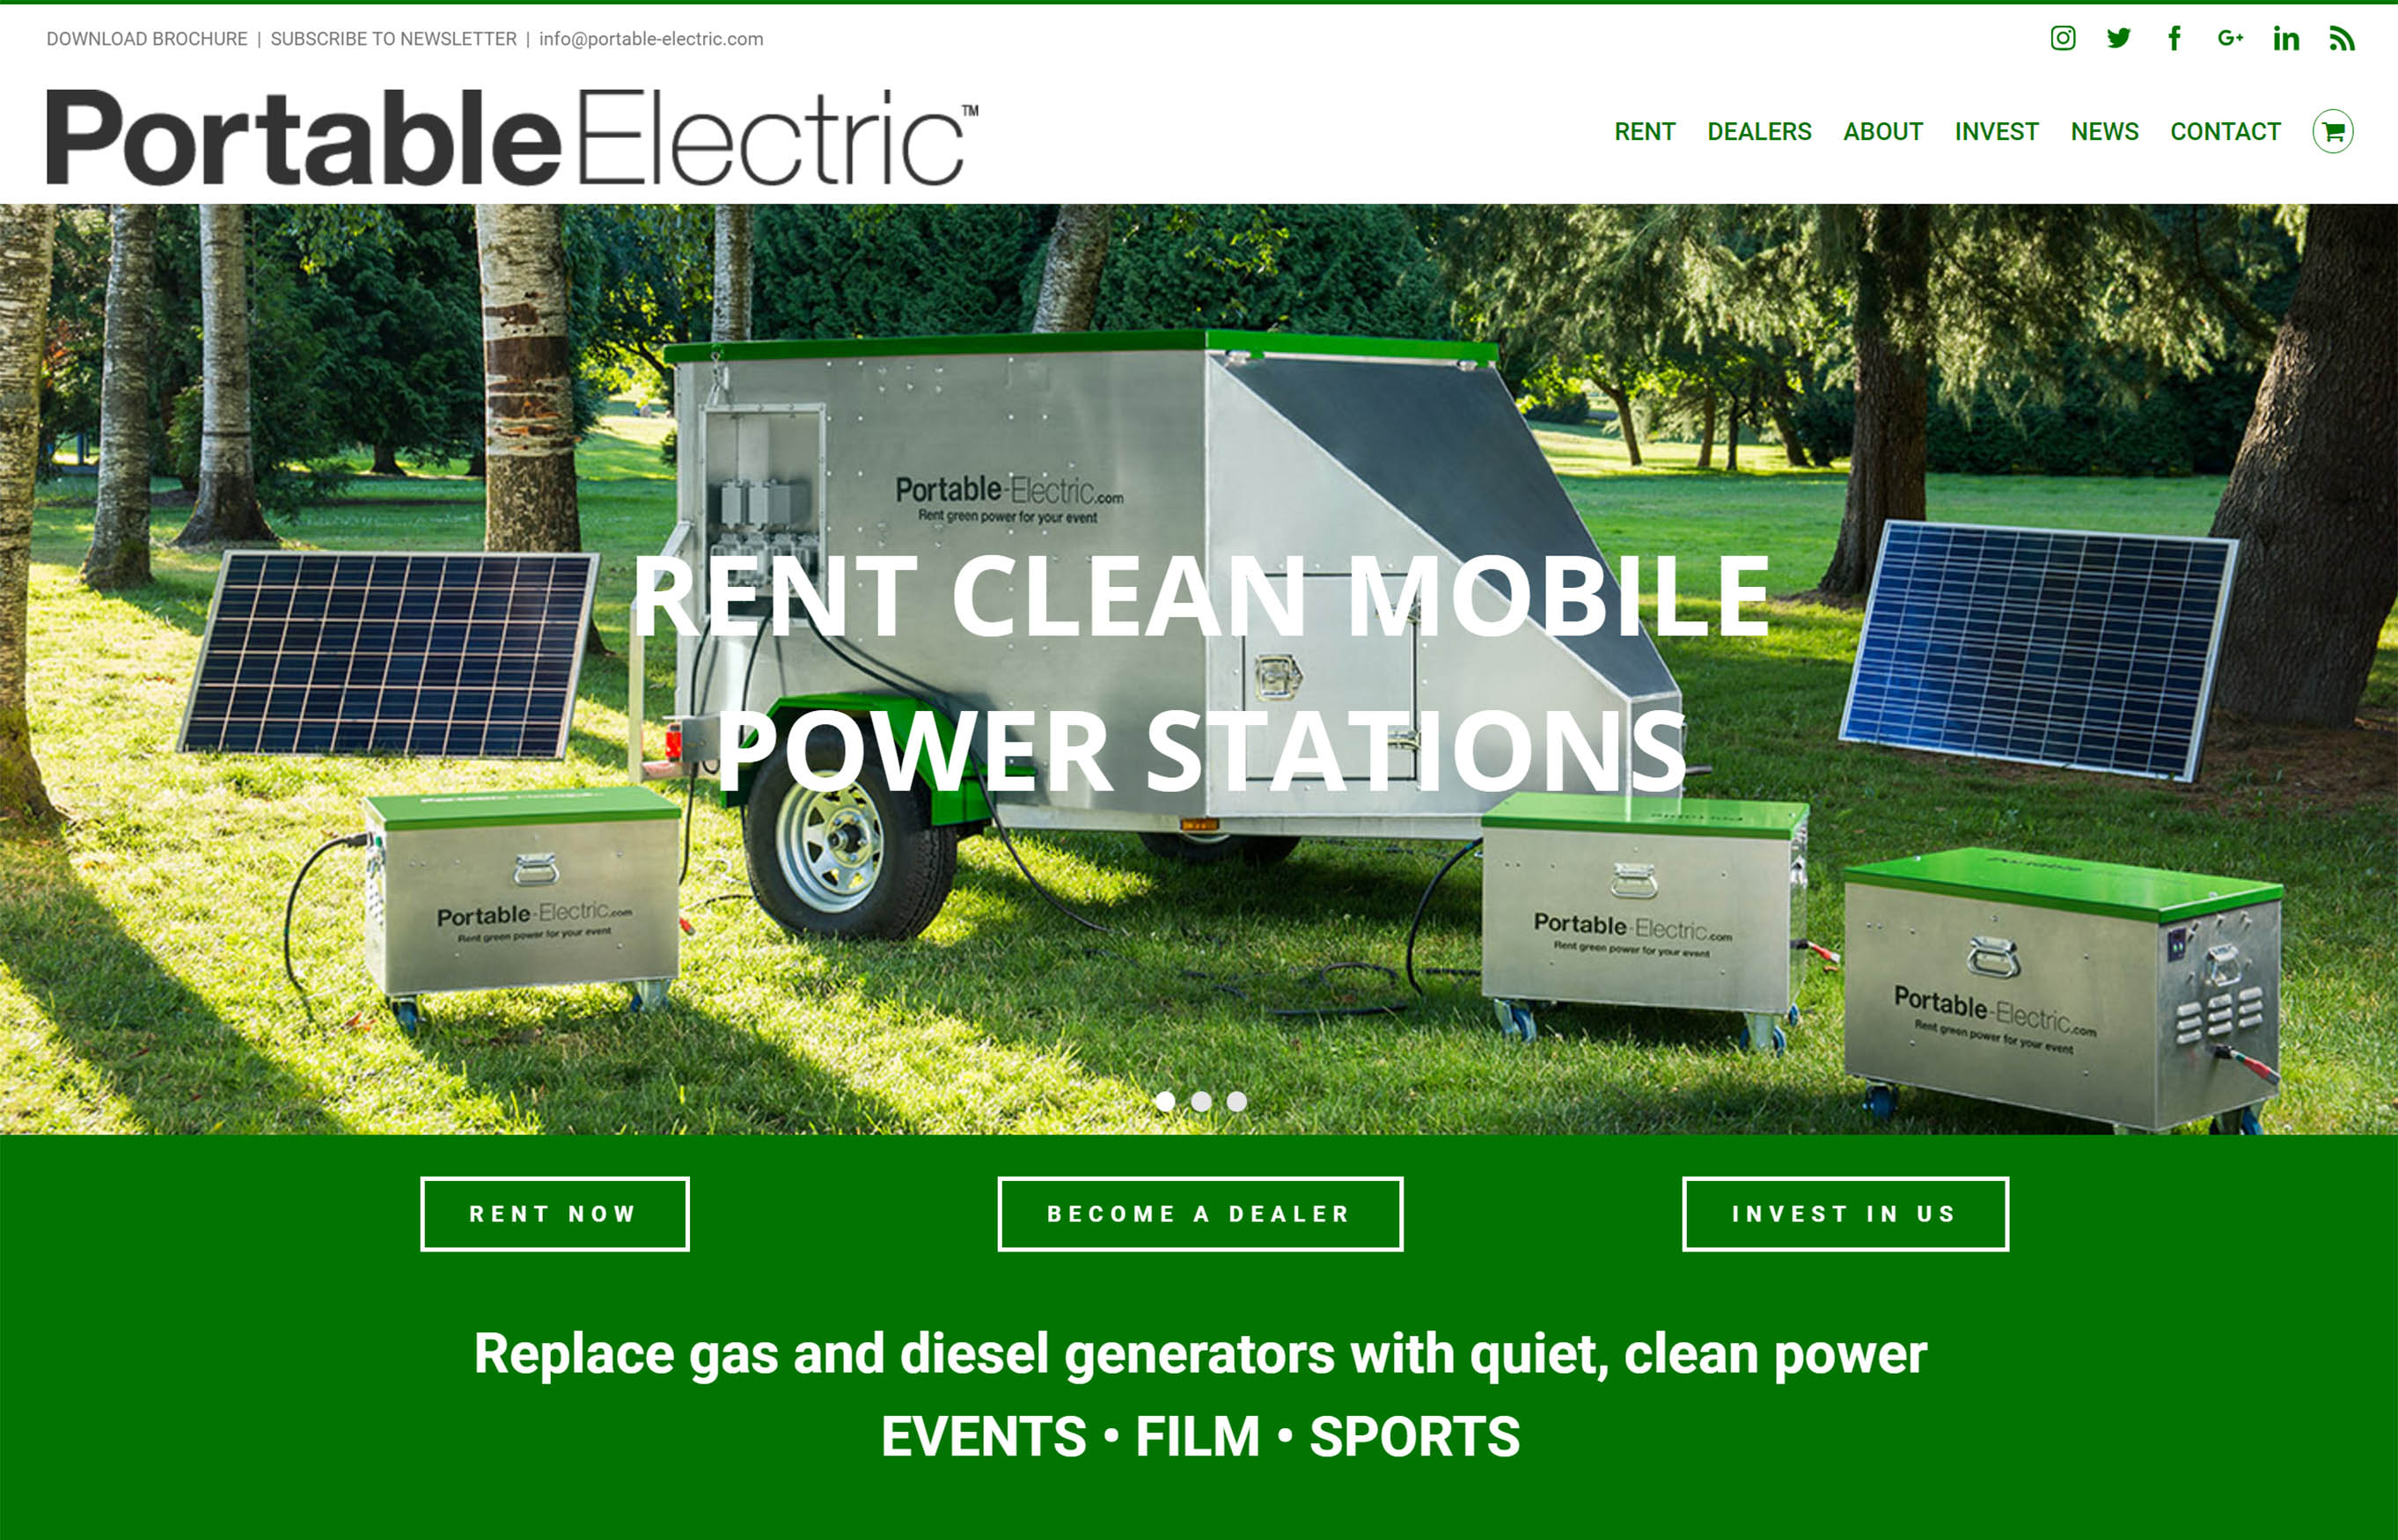 Portable-Electric